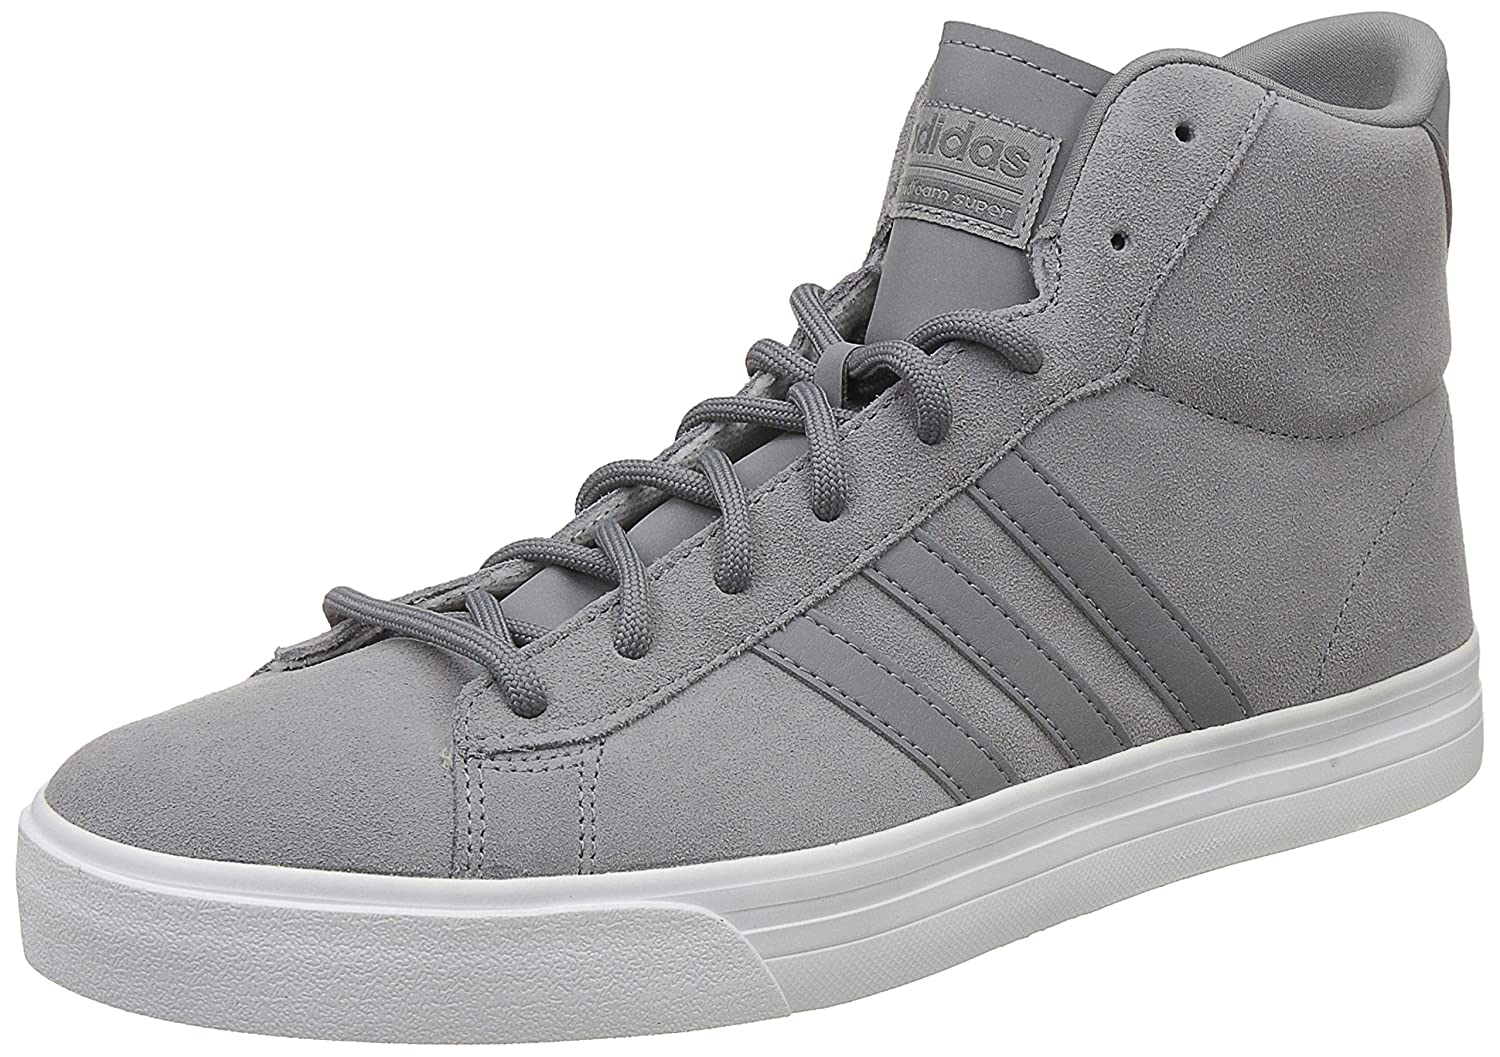 separation shoes 3f631 46adb adidas neo Men s Cf Super Daily Mid Grethr Grethr Grefou Sneakers - 6  UK India (39.33 EU)  Buy Online at Low Prices in India - Amazon.in